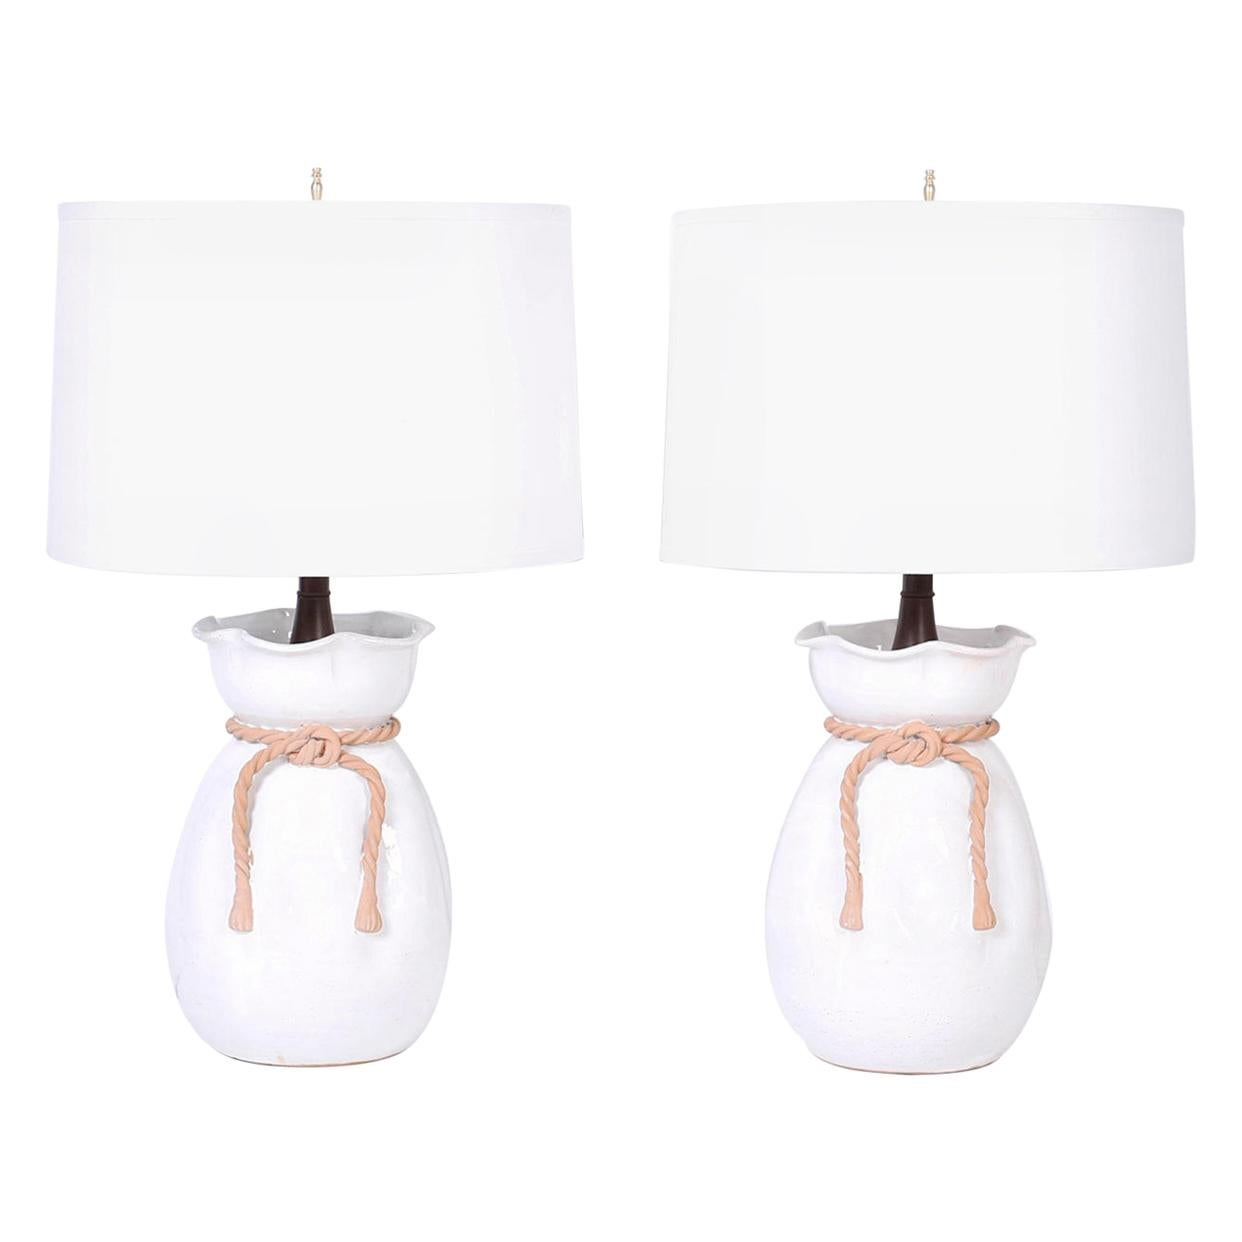 Pair of Terracotta Trompe L'oeil Table Lamps Attributed to Urbano Zaccagnini